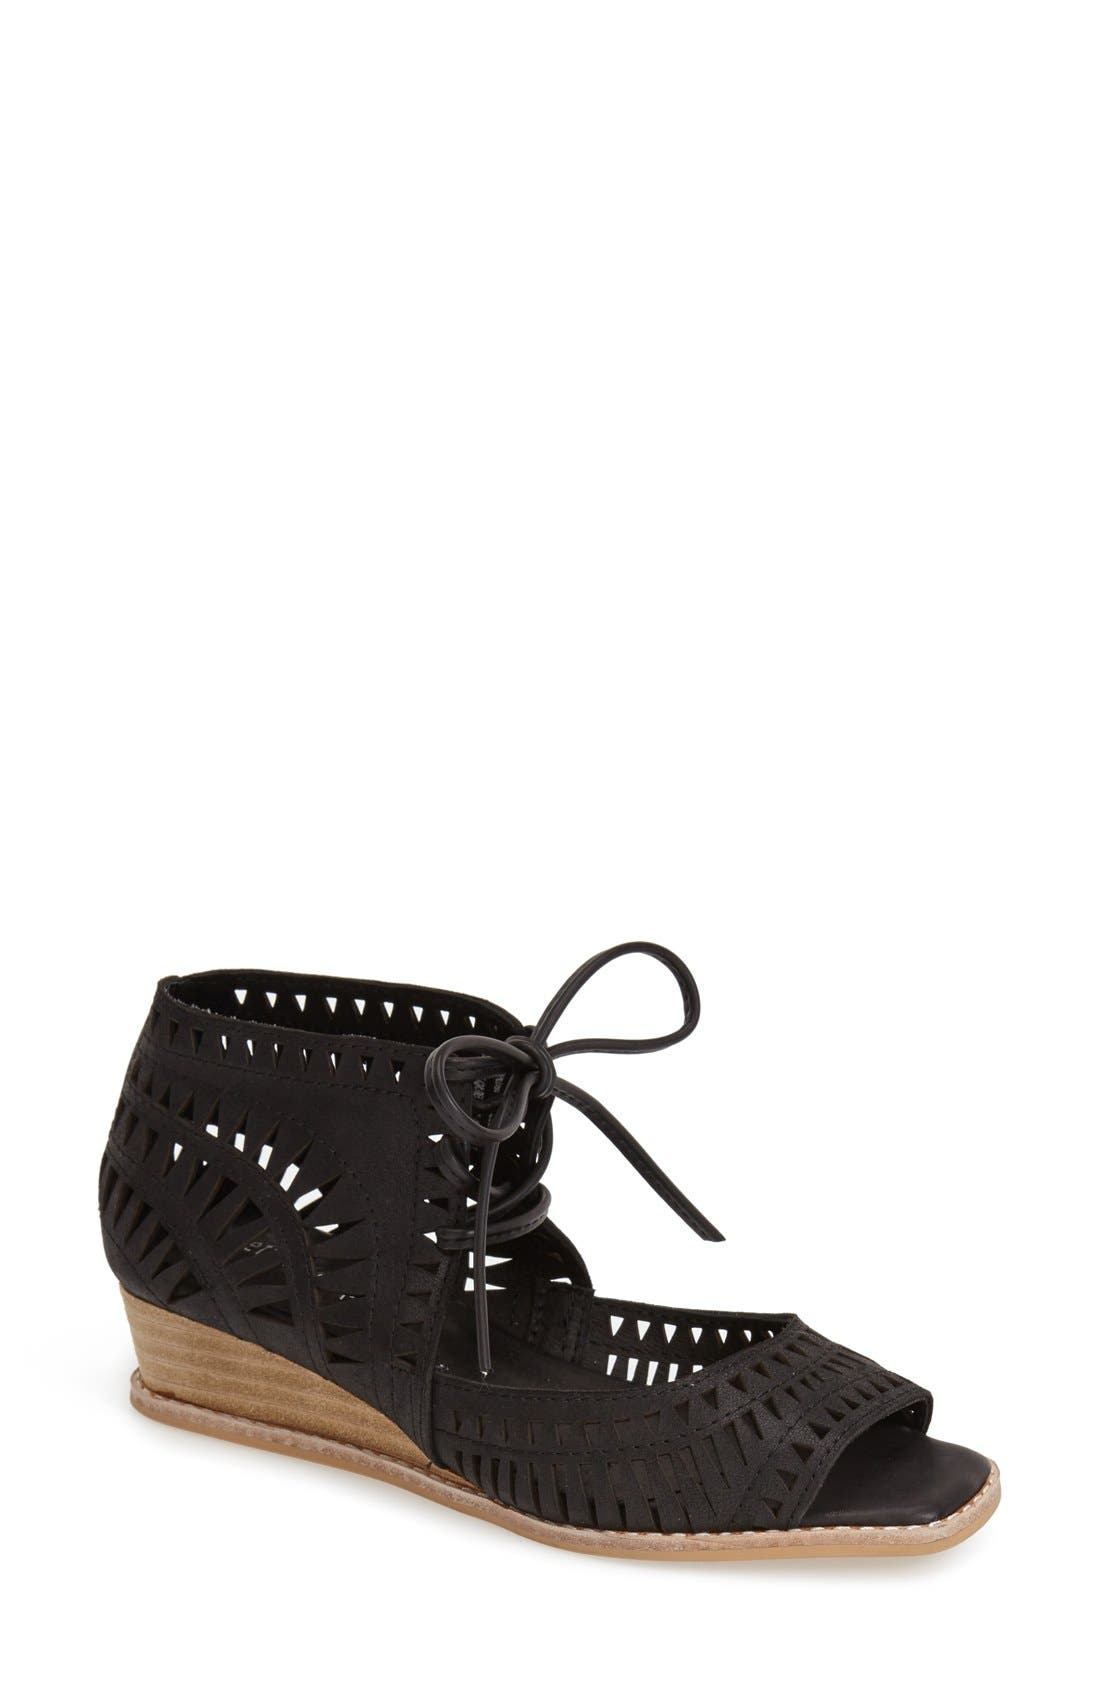 JEFFREY CAMPBELL 'Rodillo' Wedge Sandal